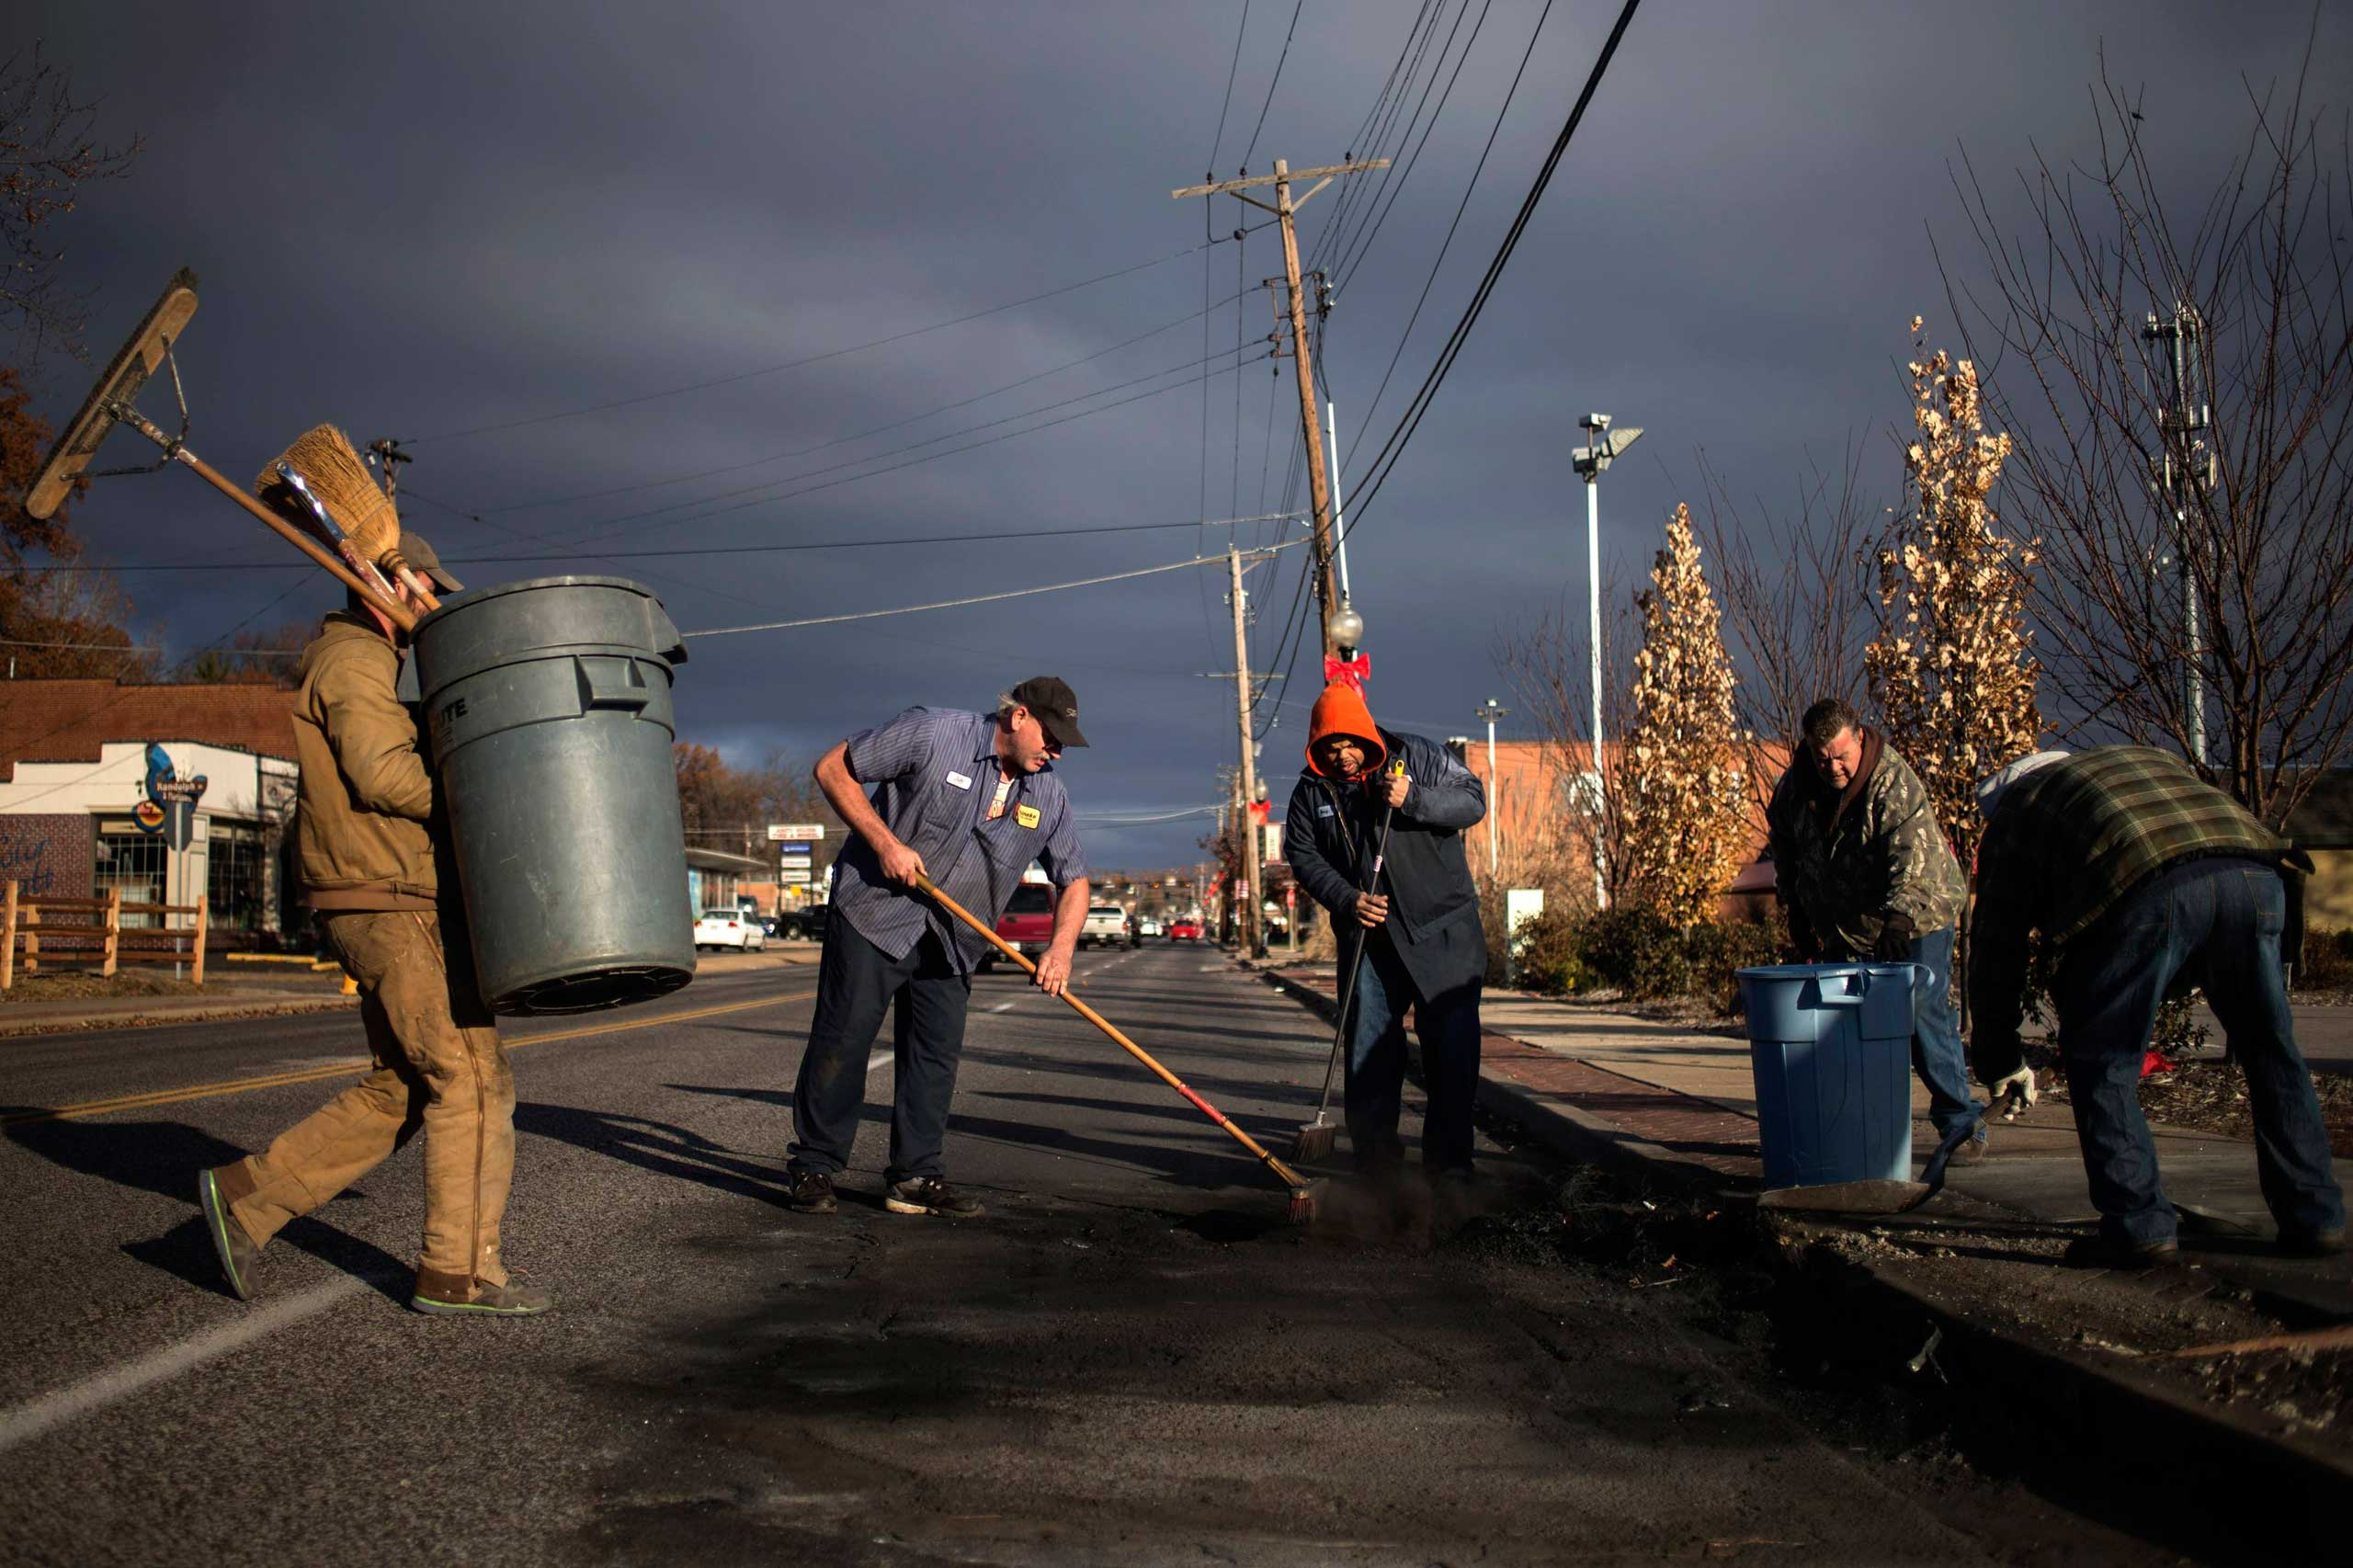 Volunteers and workers clear soot from the site where a police vehicle was set ablaze in Ferguson, Mo. on Nov. 25, 2014.